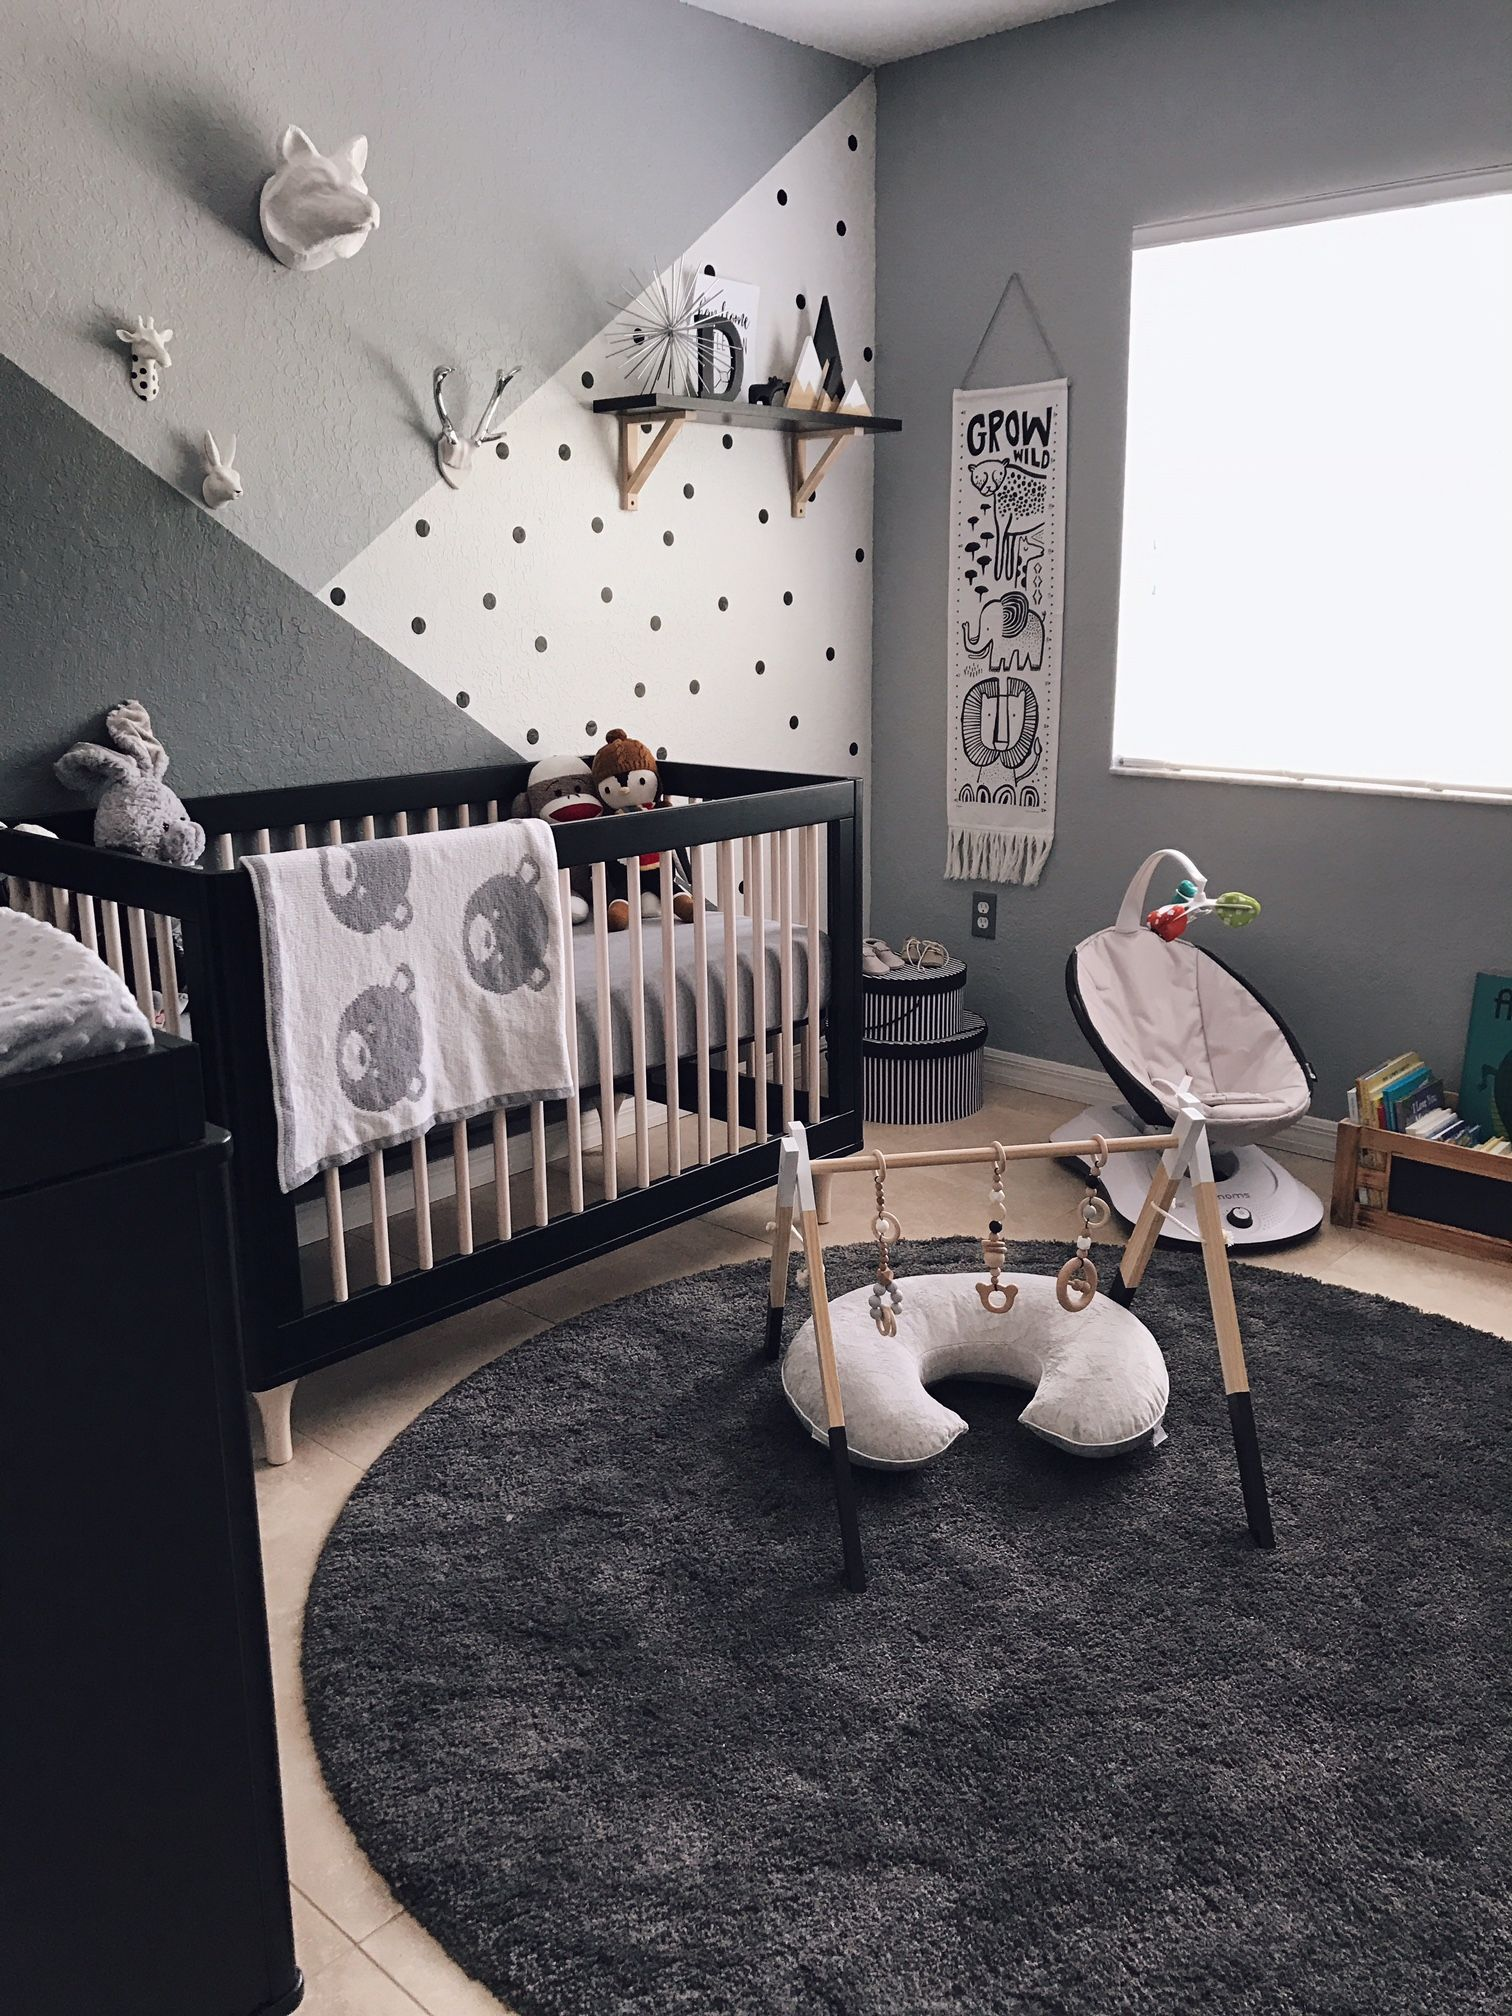 Monochrome Zoo Nursery Project Nursery Nursery Baby Room Baby Nursery Inspiration Boy Room